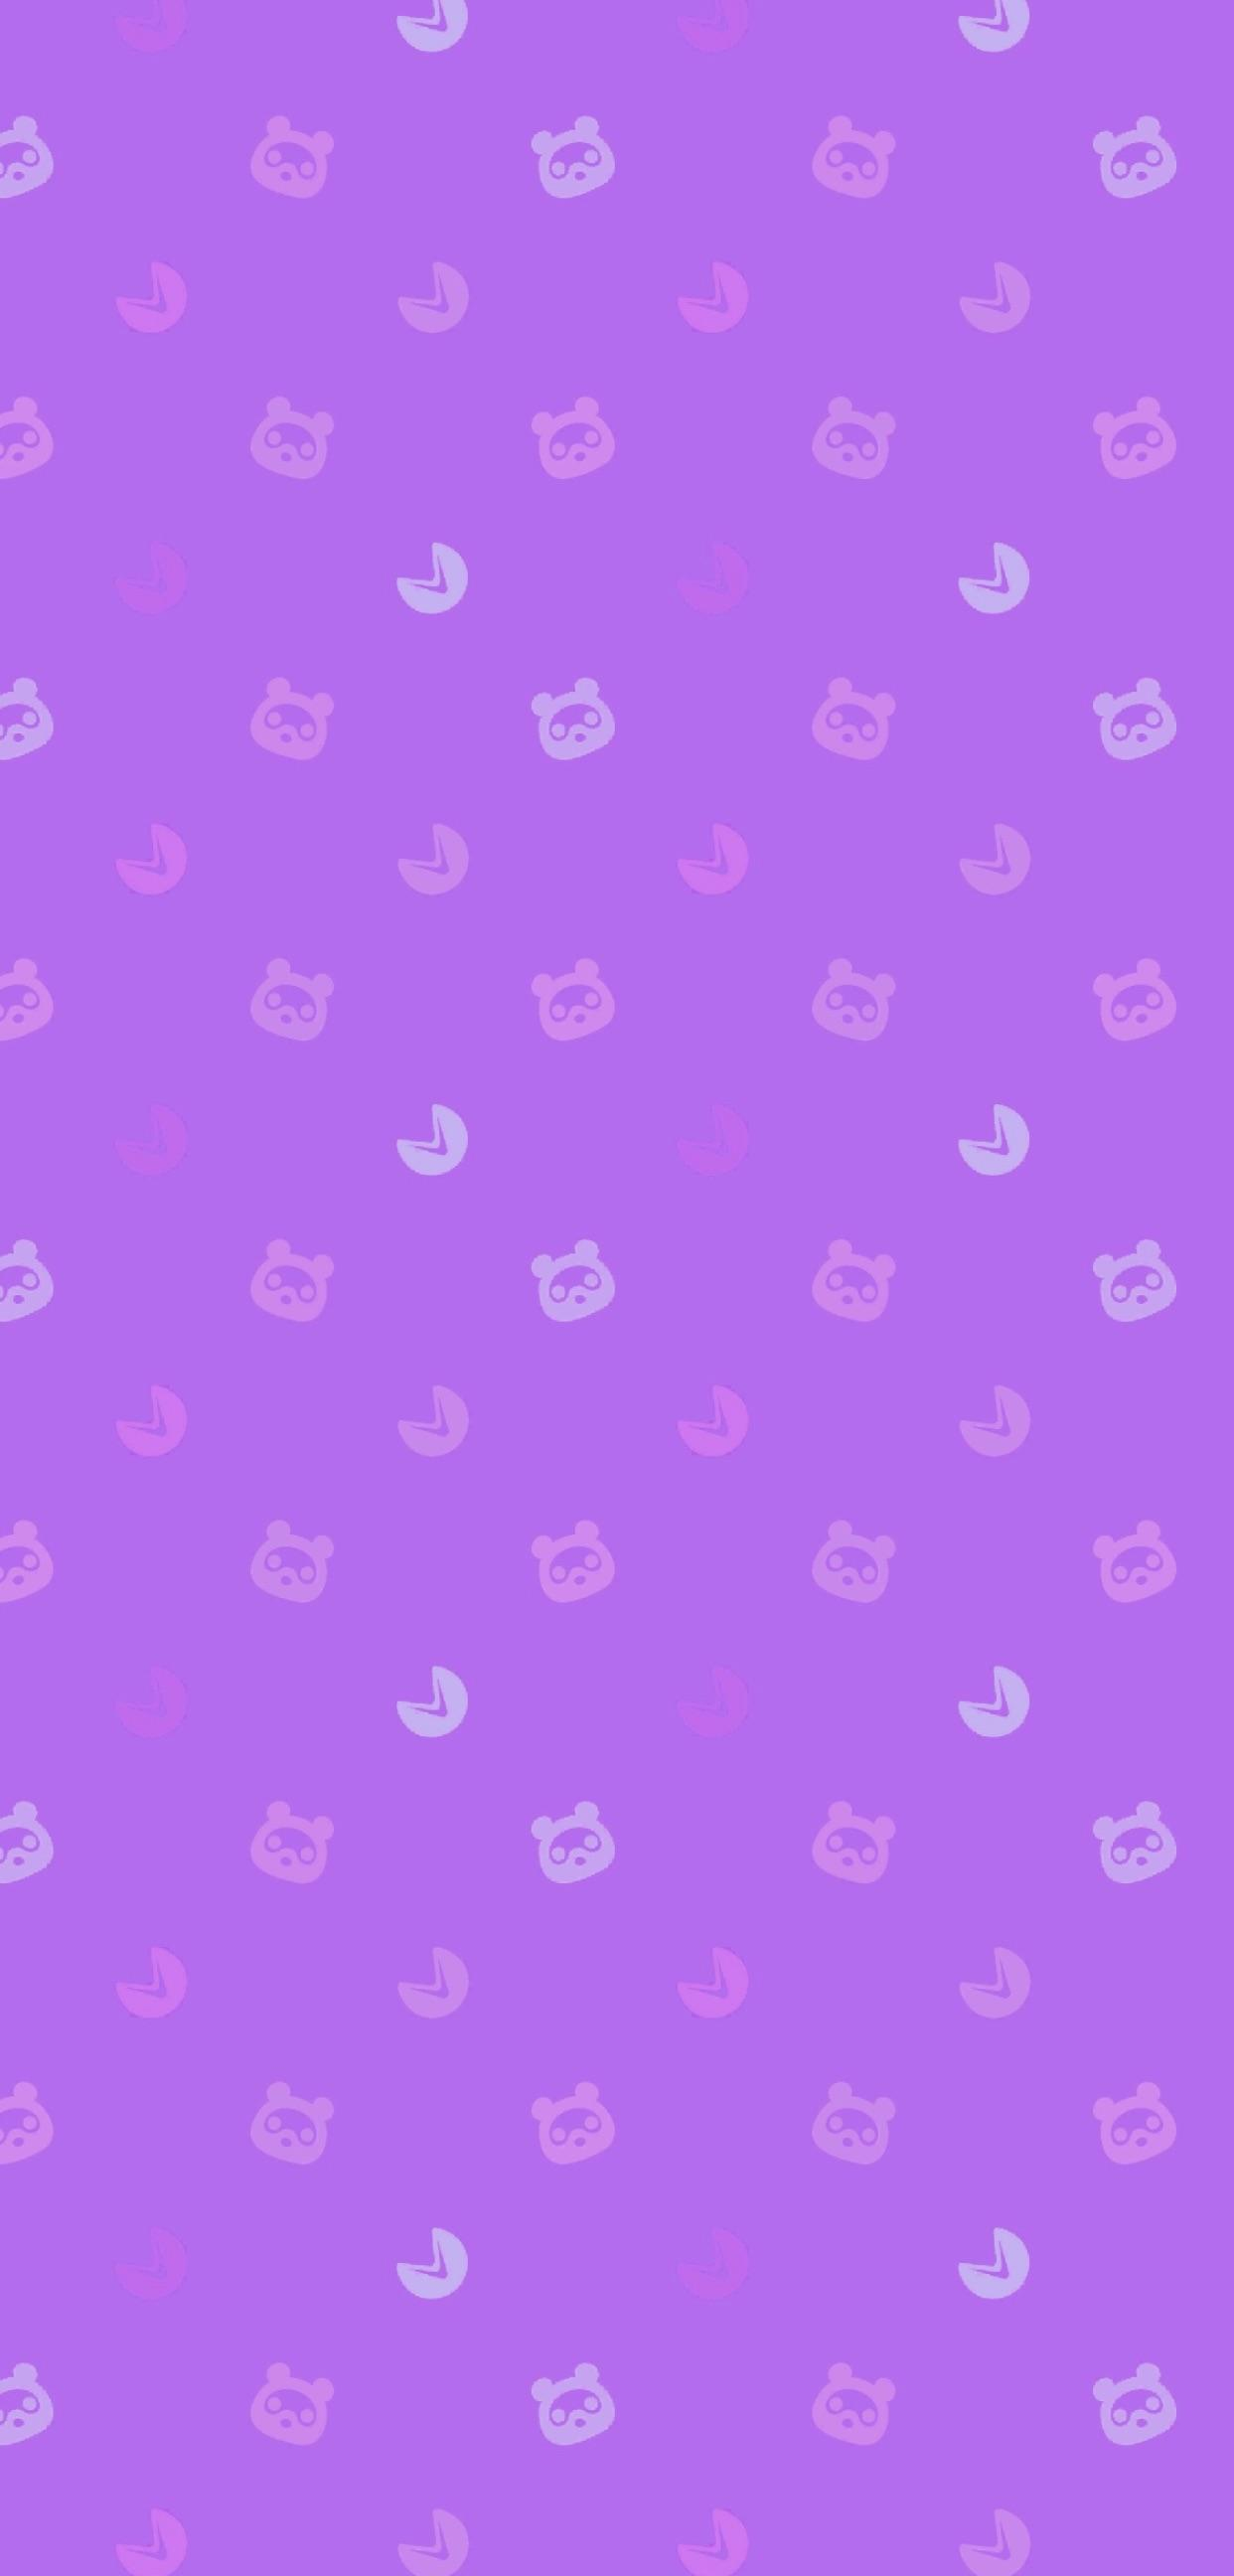 Free Download I Made A Wallpaper Please Enjoy Animalcrossing